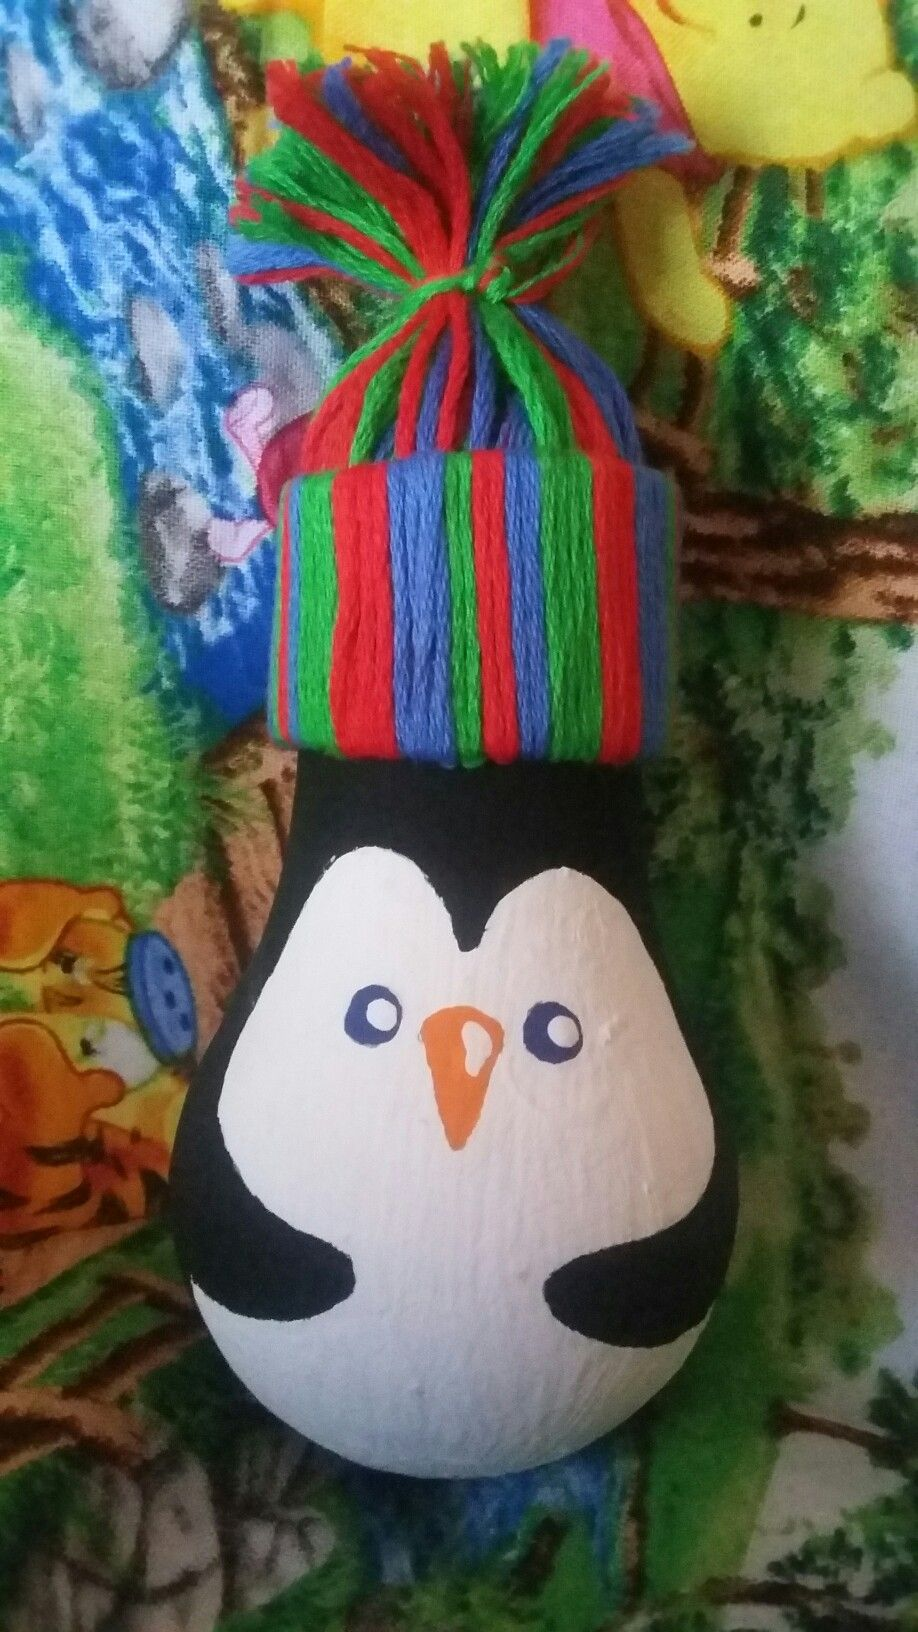 Mister penguin is finished with his new hatornament made by